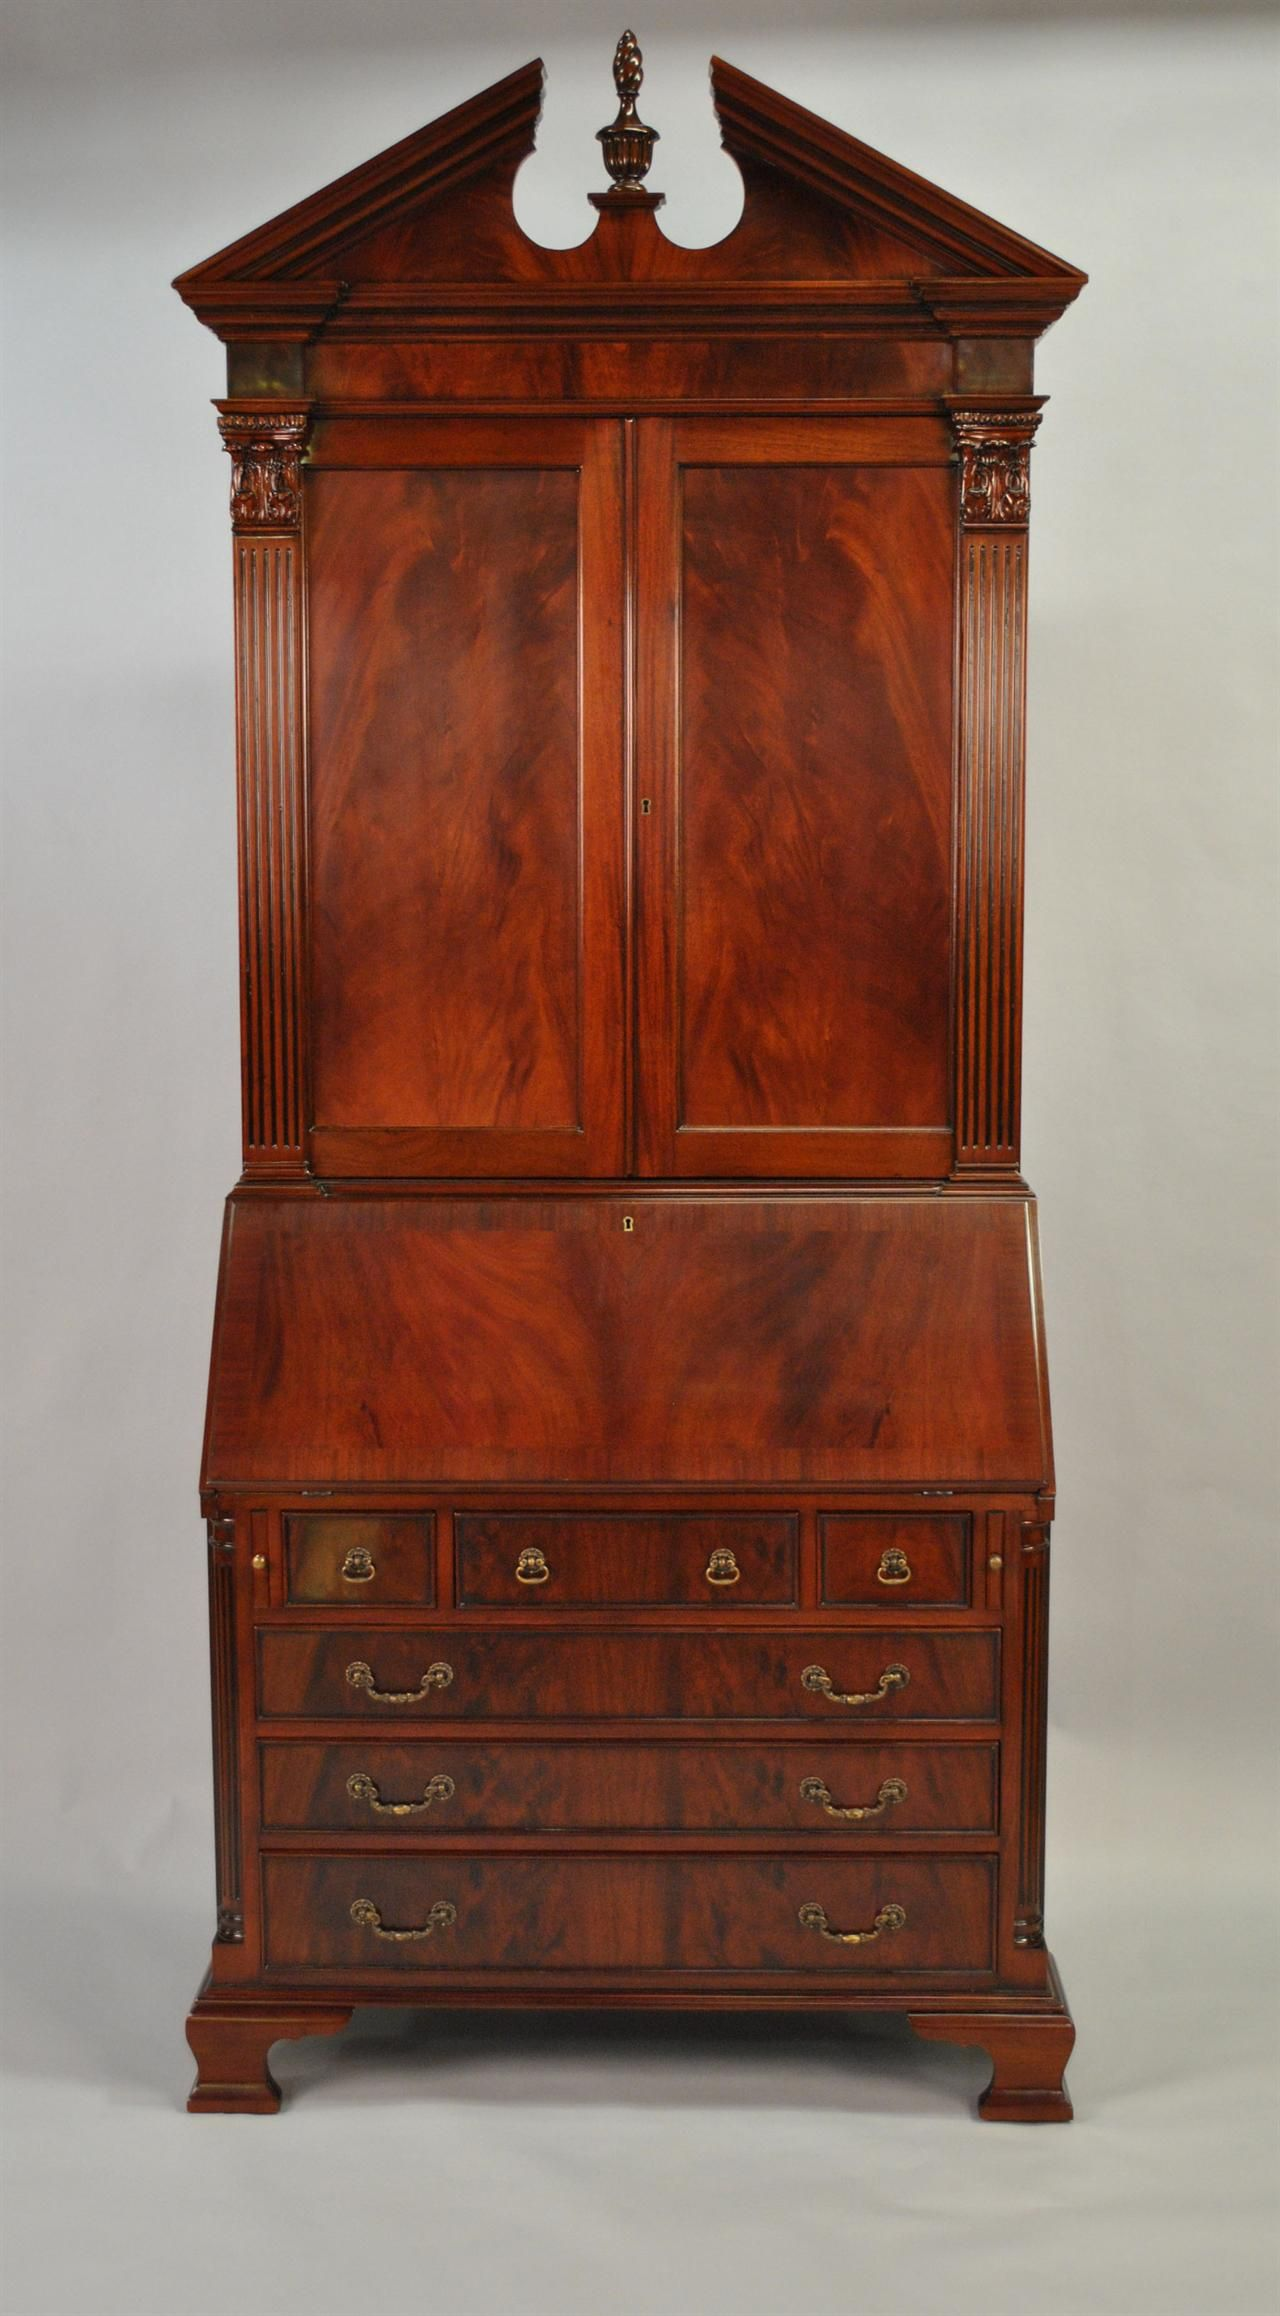 antique secretary desk | Colonial Secretary Desk, Mahogany Secretary Desk, Antique Styling - Colonial Secretary Desk, Mahogany Secretary Desk,Antique Styling